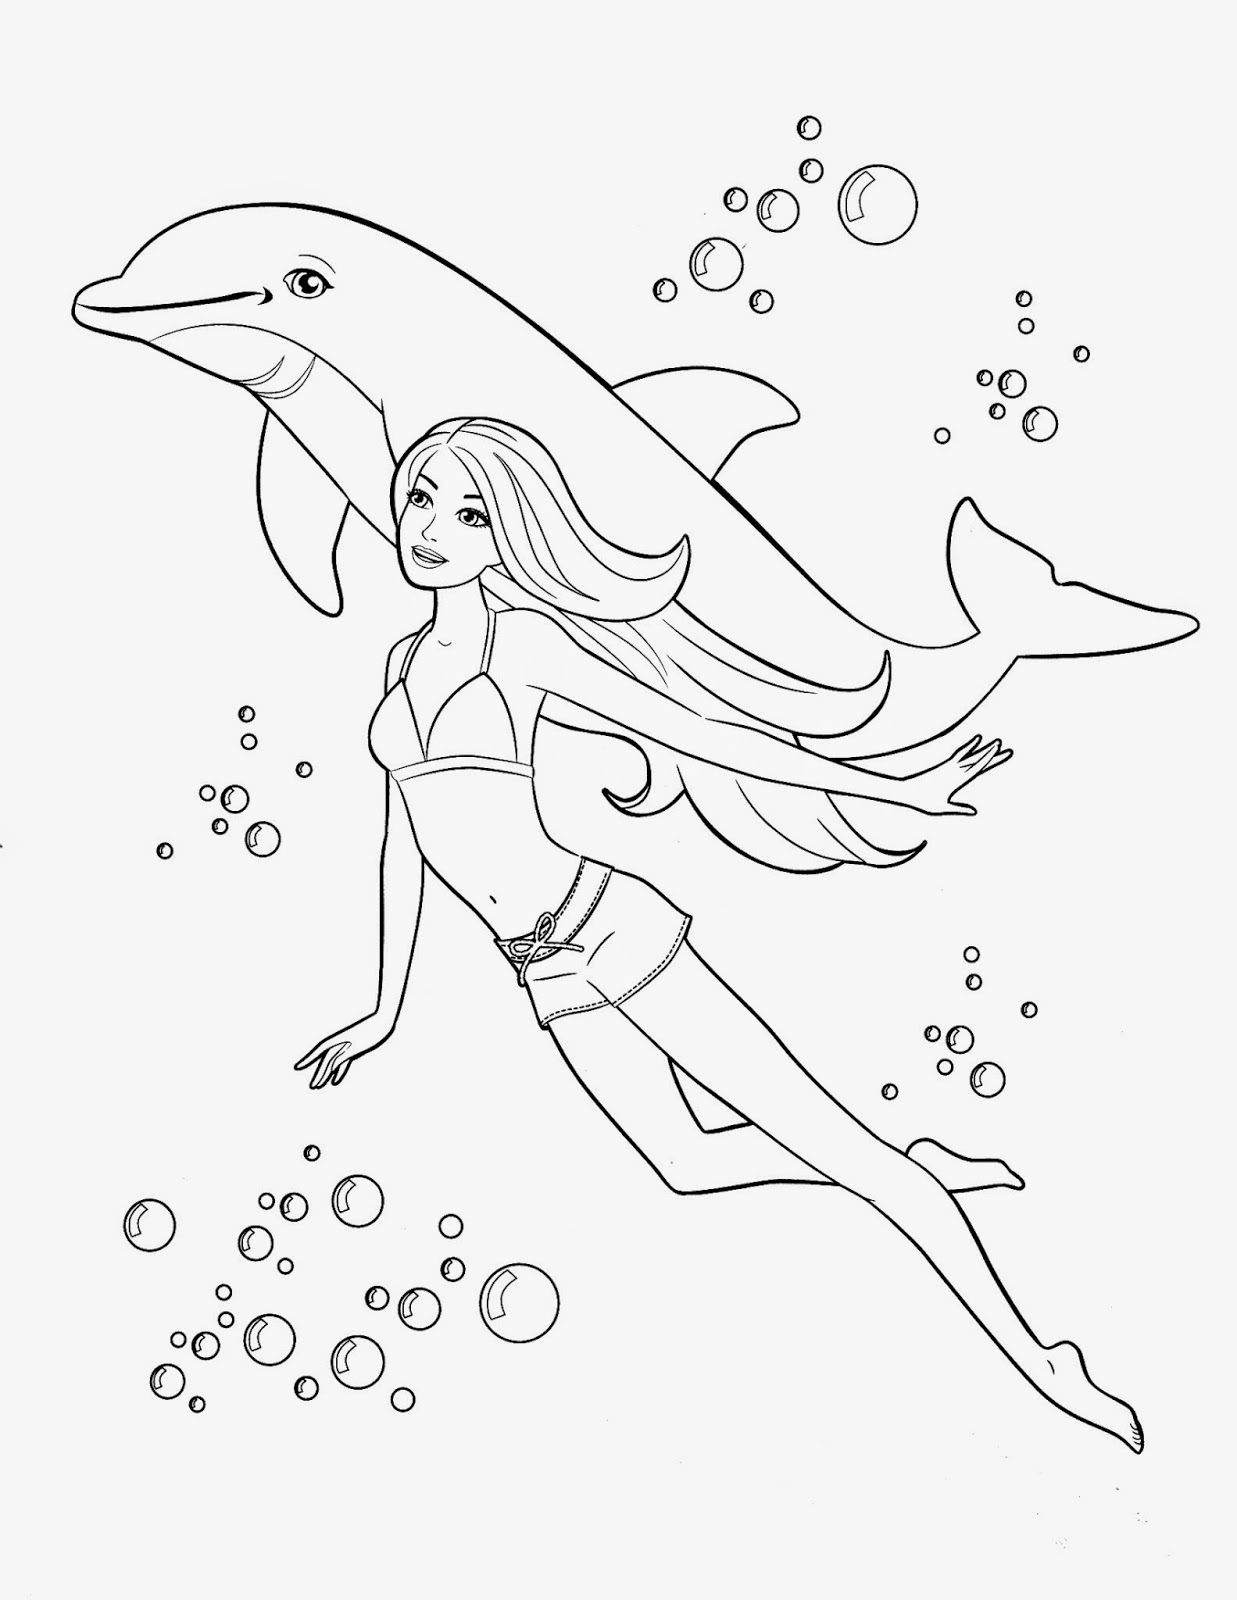 Coloring Pages: Barbie Free Printable Coloring Pages